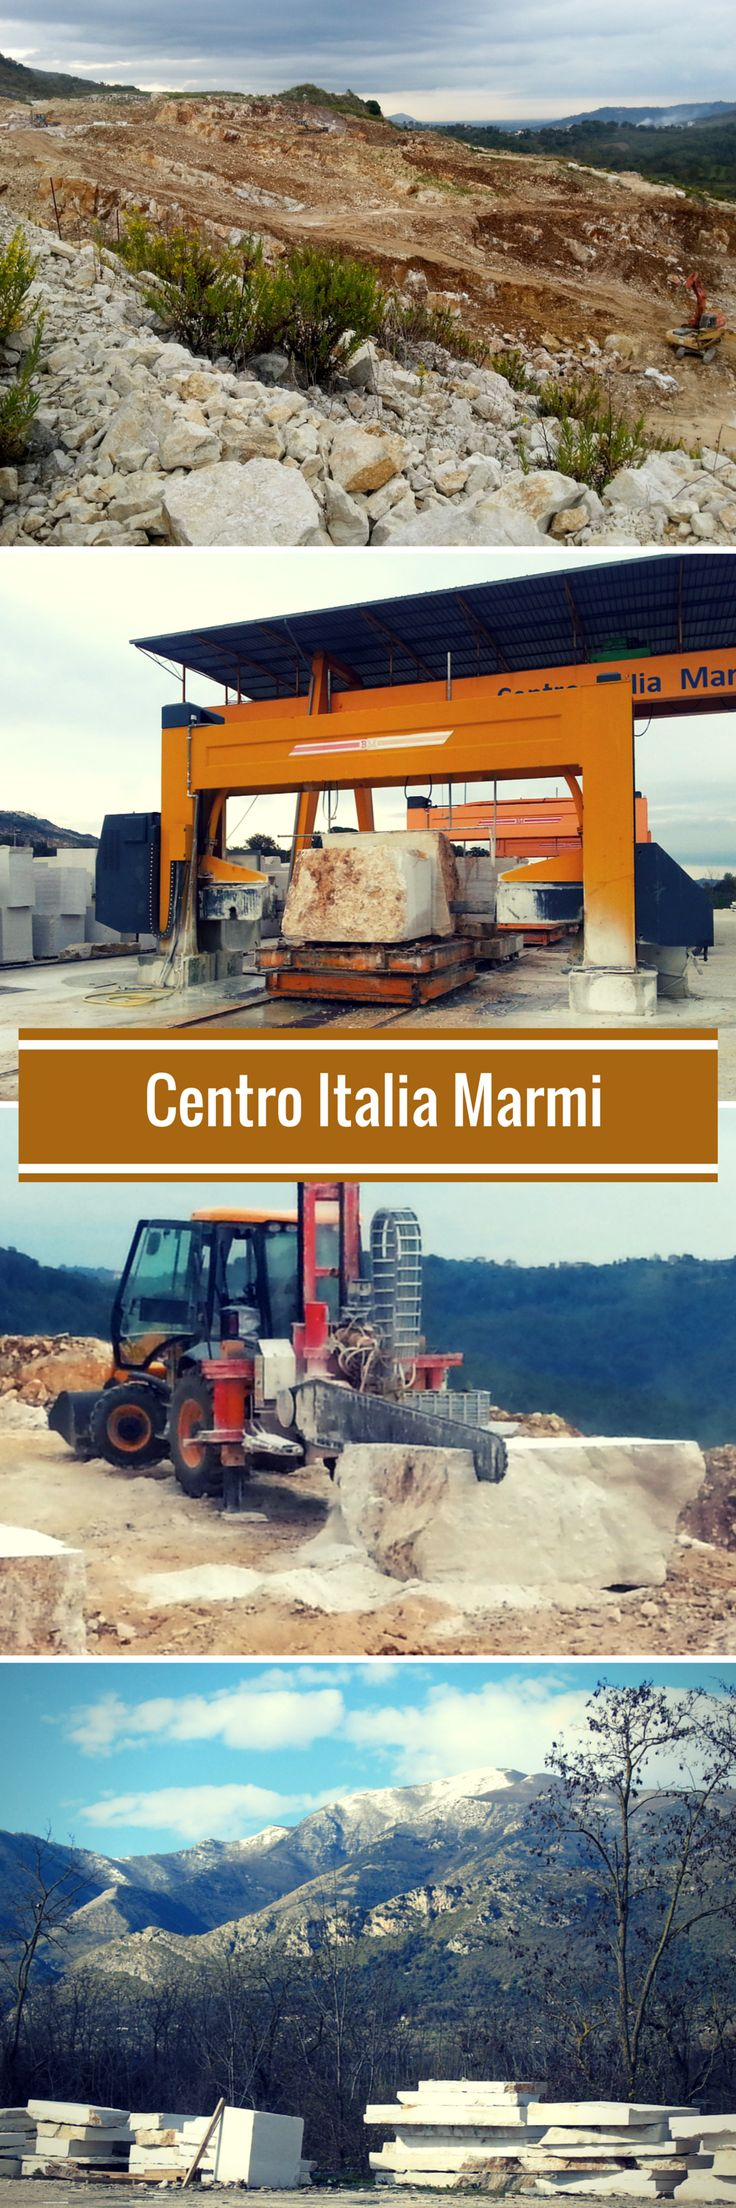 @centroitaliam is a enterprise that extracts and realizes different products of marble Perlato Royal Coreno from urban design to interior decor #marmo #marble #perlatoroyal coreno #design #interior